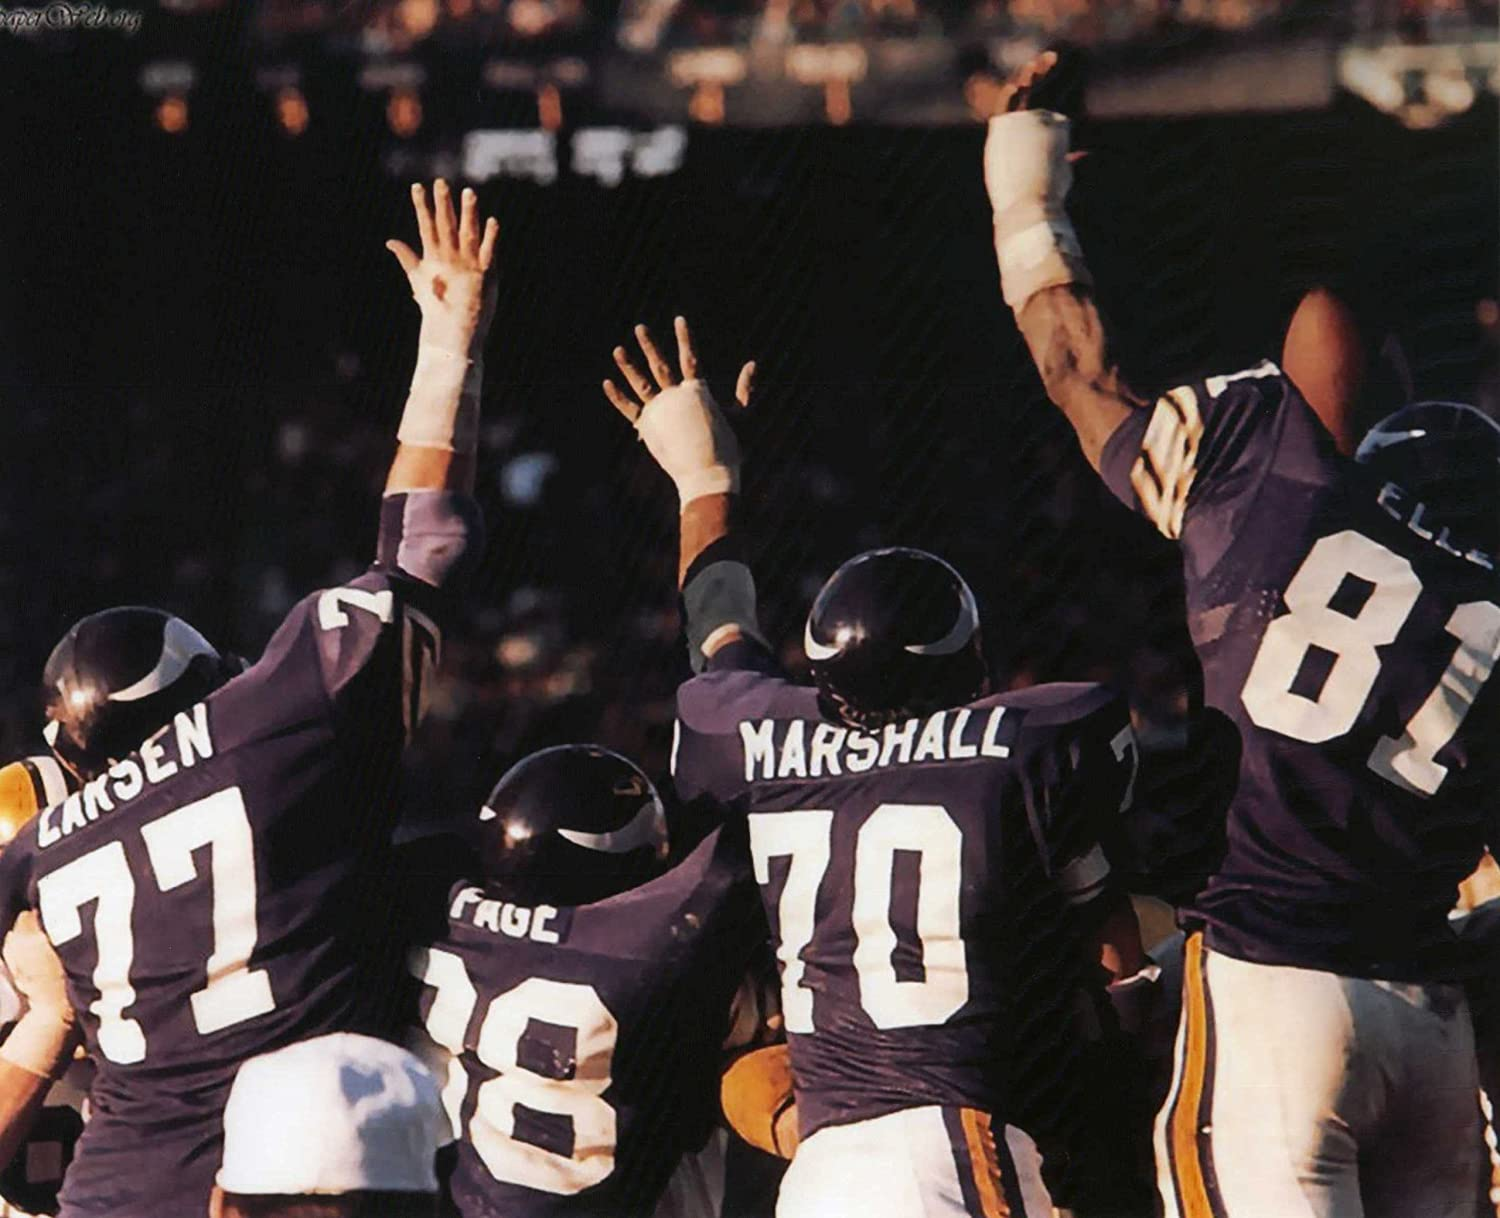 MINNESOTA VIKINGS PURPLE PEOPLE EATERS DEFENSIVE UNIT 8X10 HIGH GLOSSY SPORTS ACTION PHOTO M